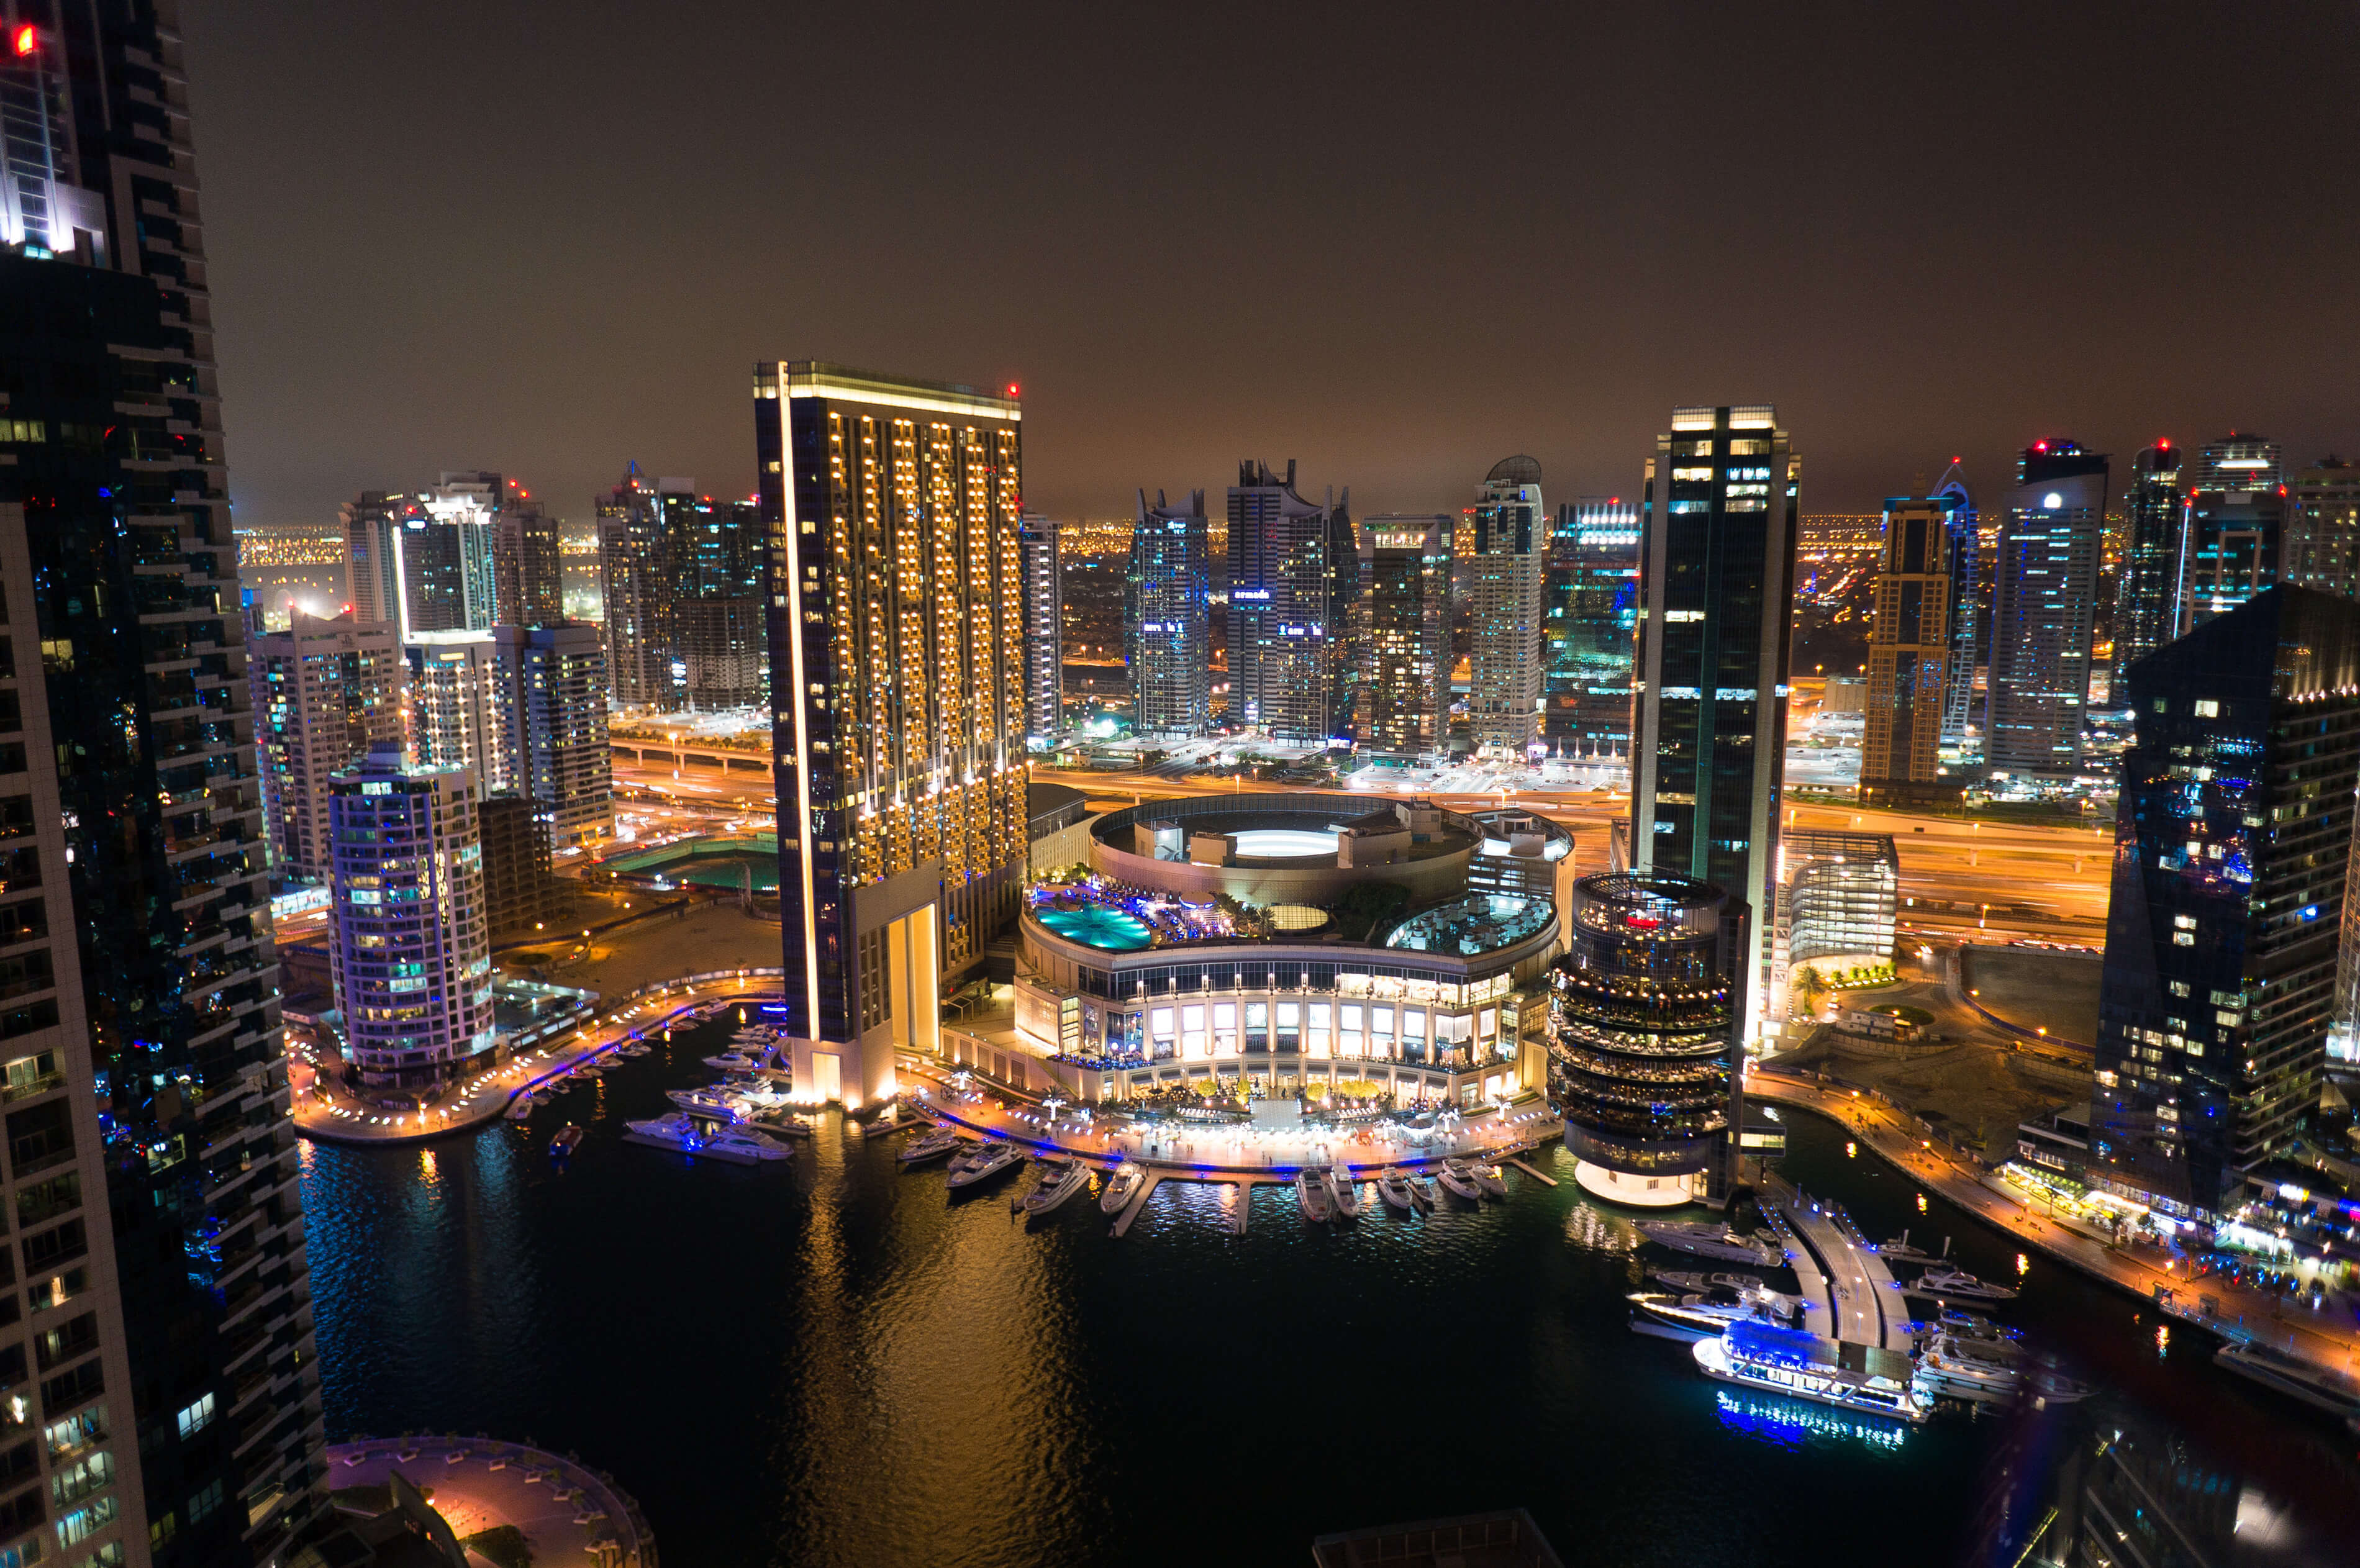 2019 and beyond are bright years for the Dubai Real Estate Market